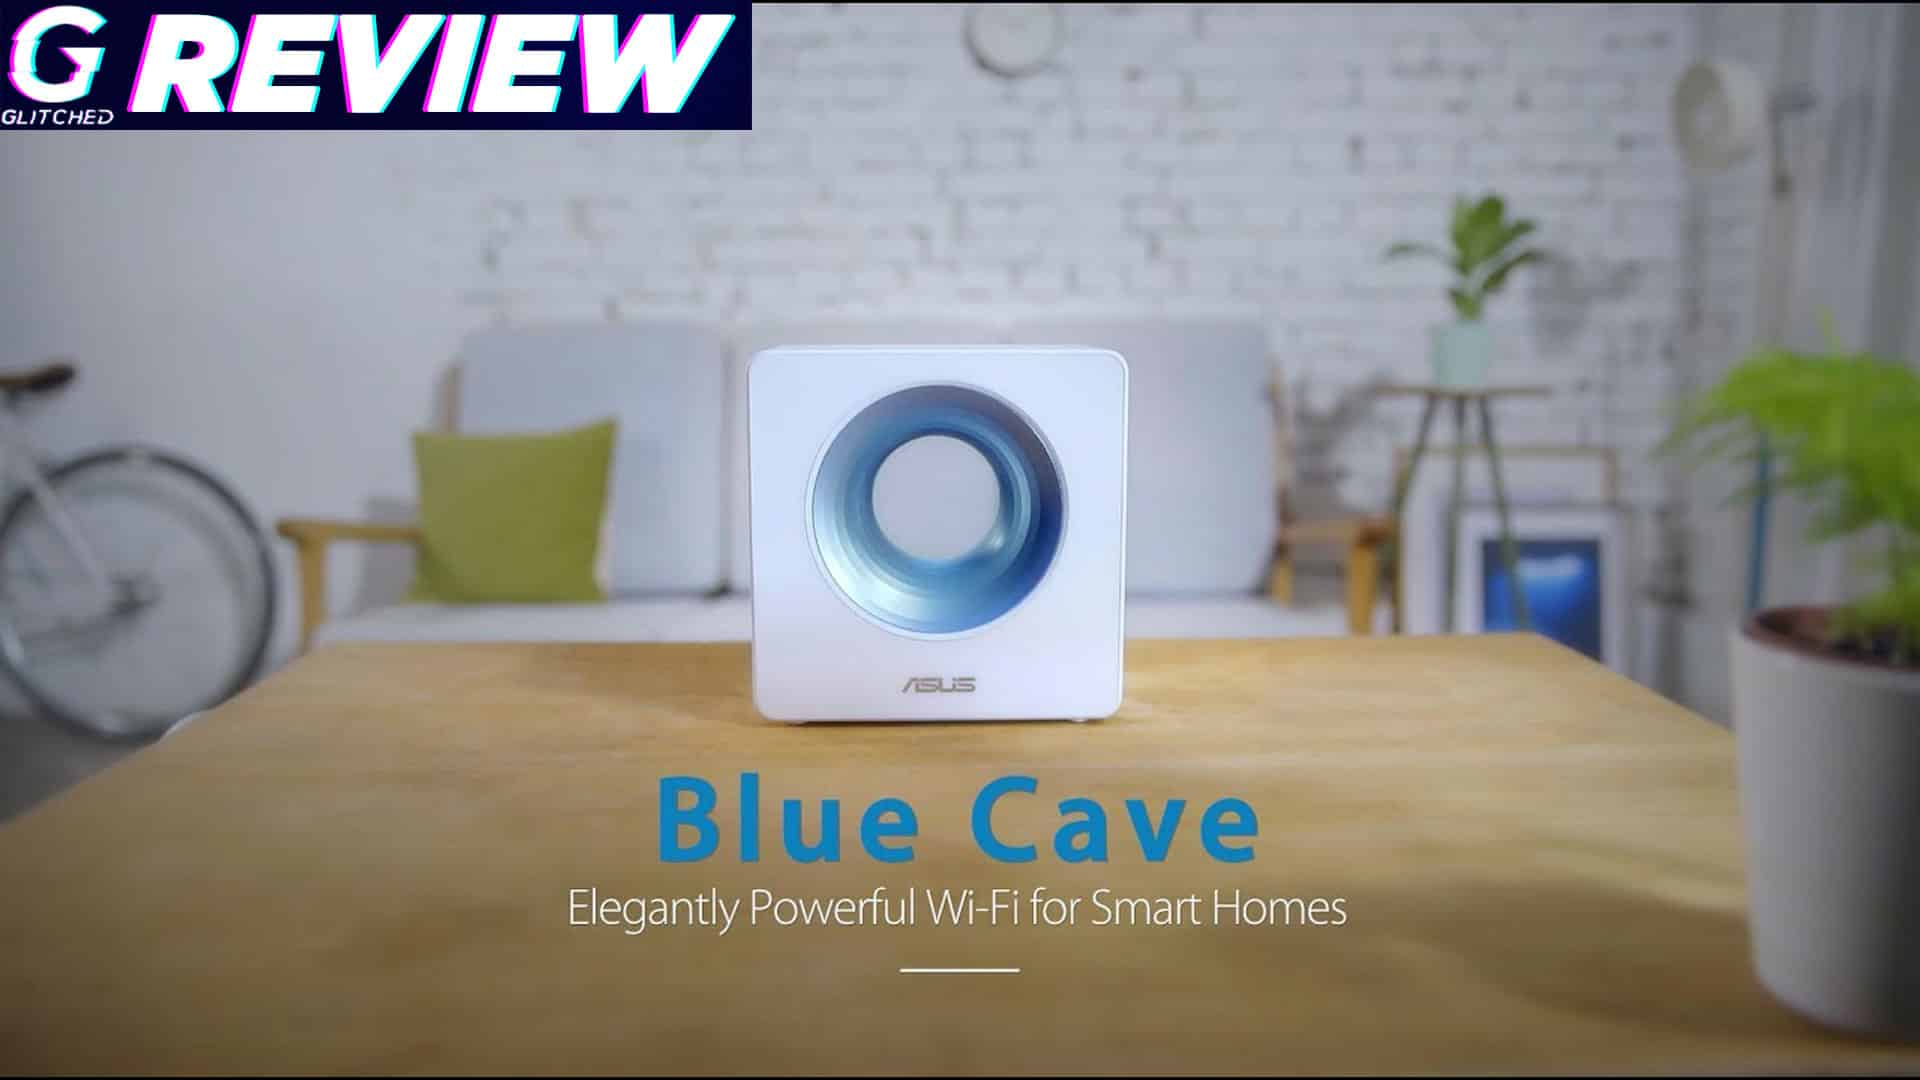 ASUS Blue Cave Router Review